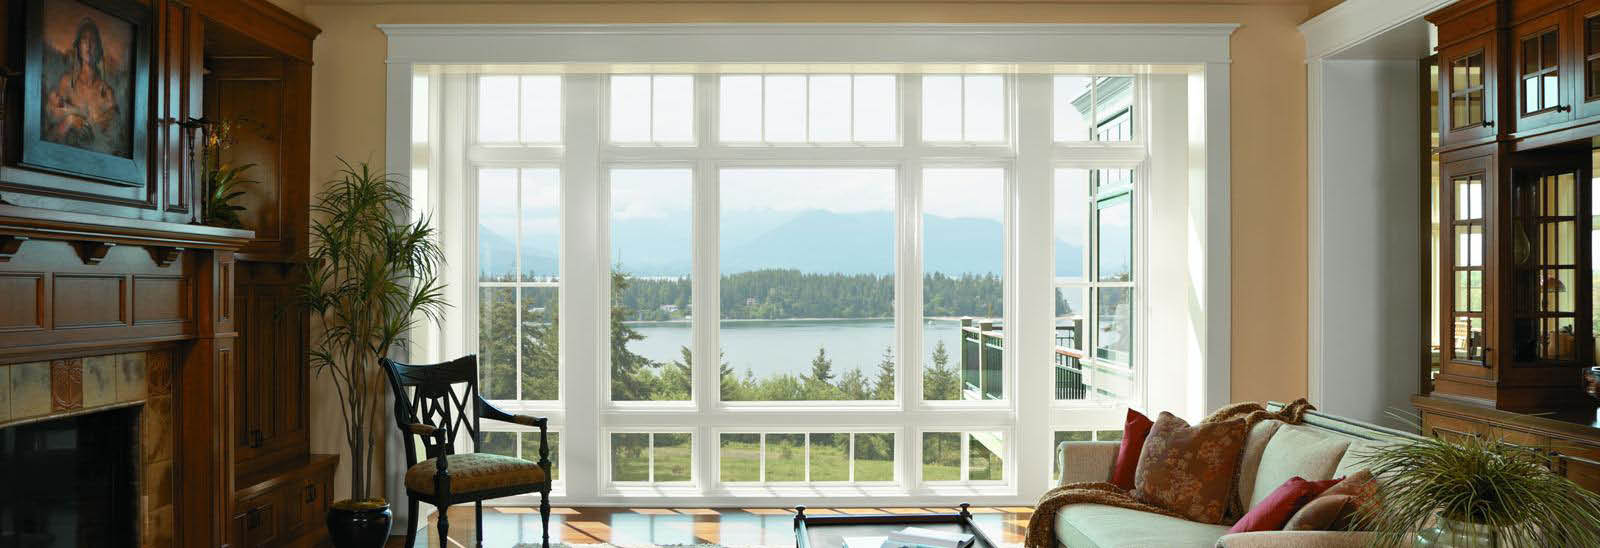 Large open expanse of windows offers maximum viewing banner